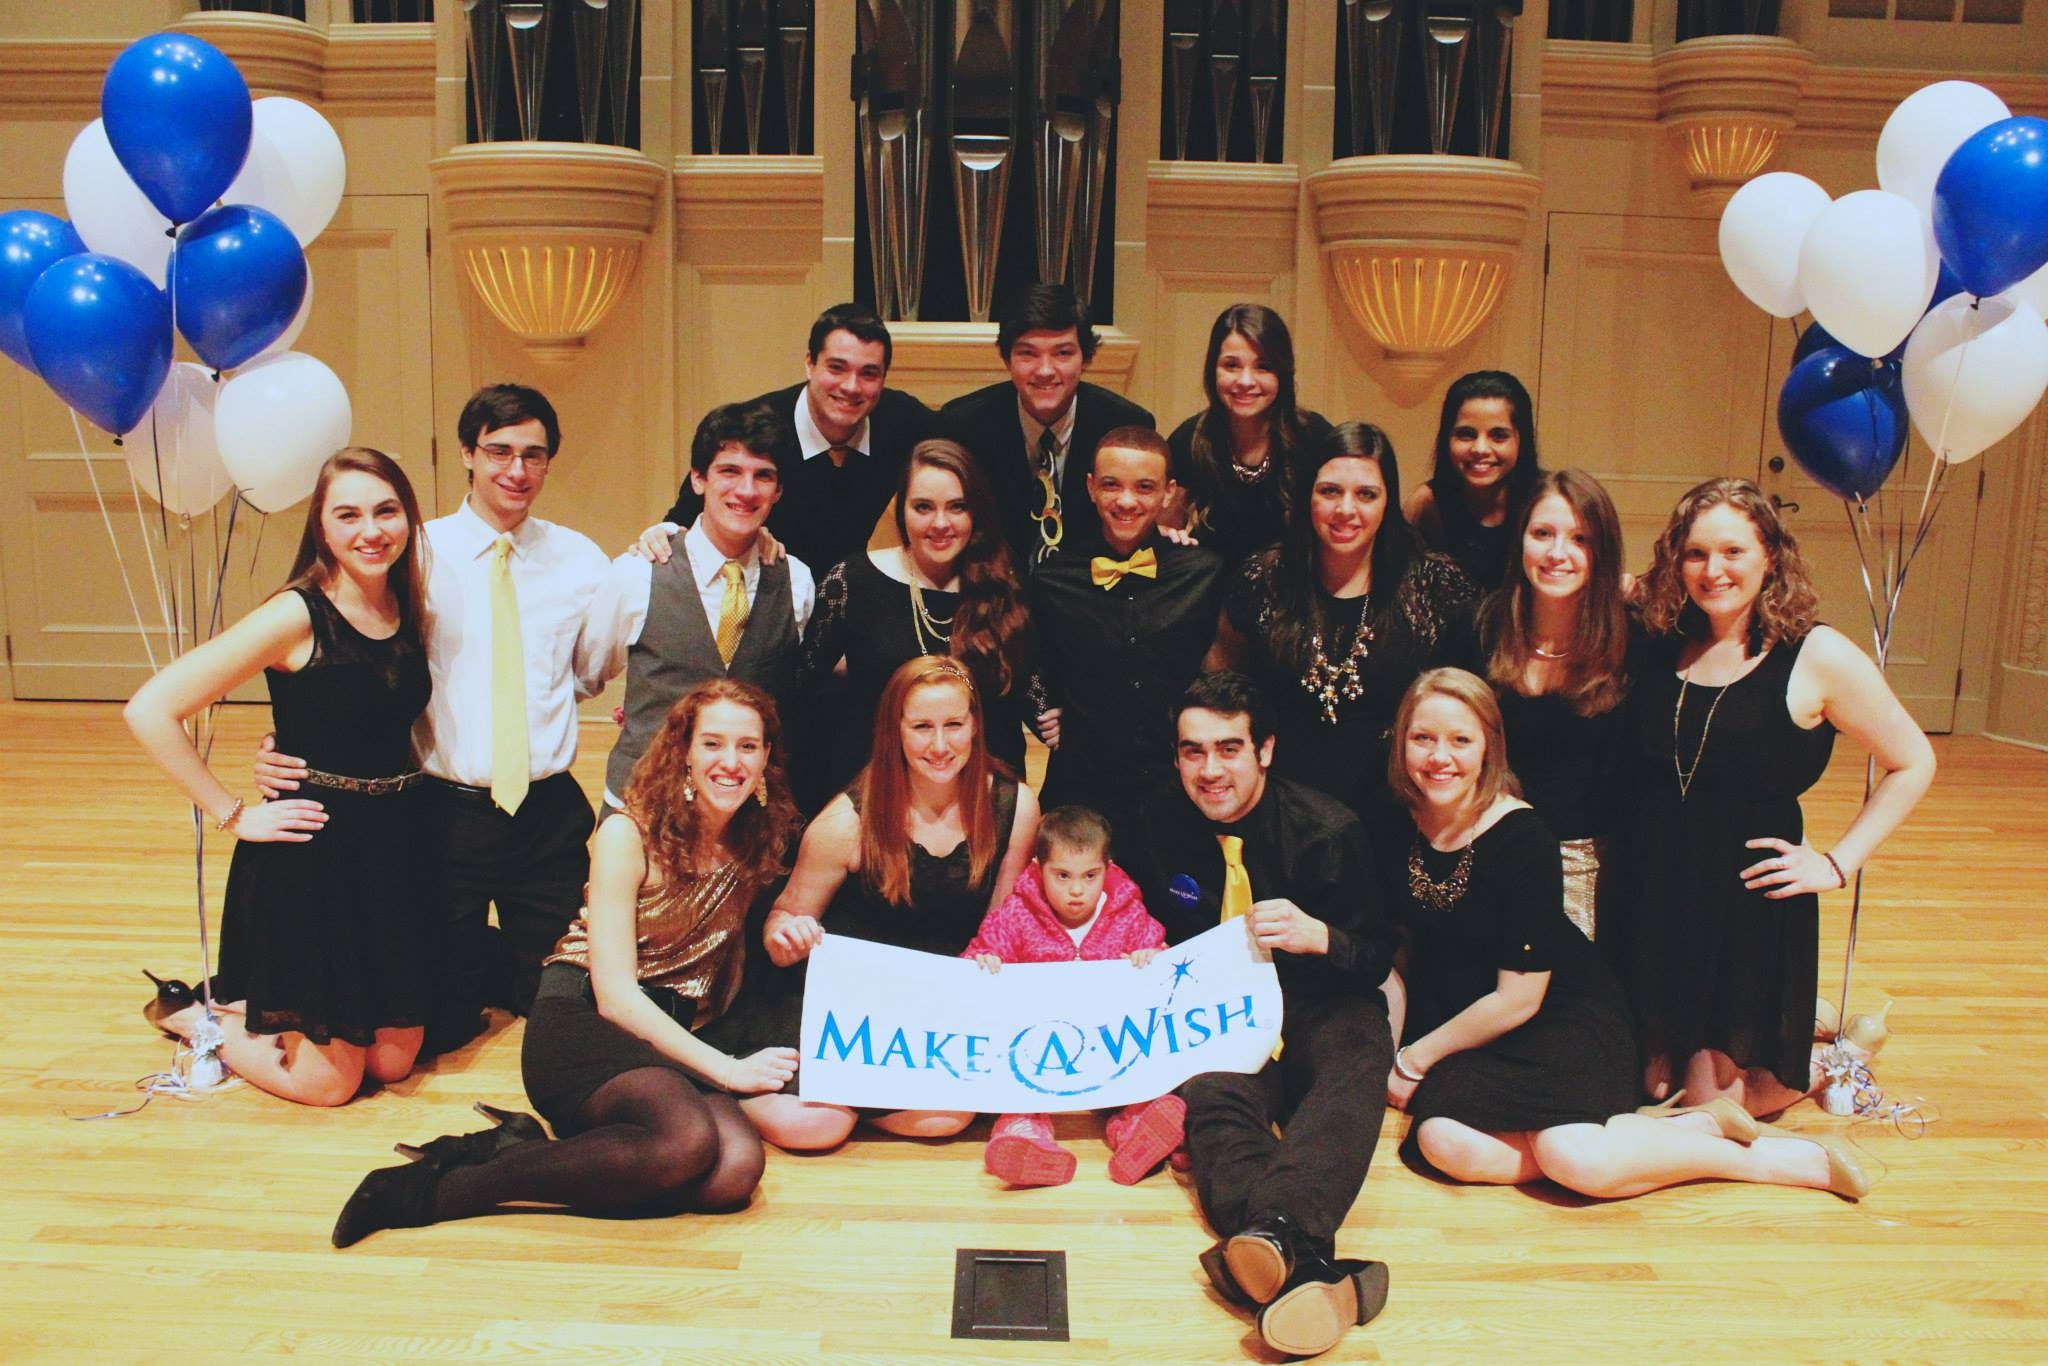 Make-A-Wish® Benefit Concert - Hosted by Vital Signs